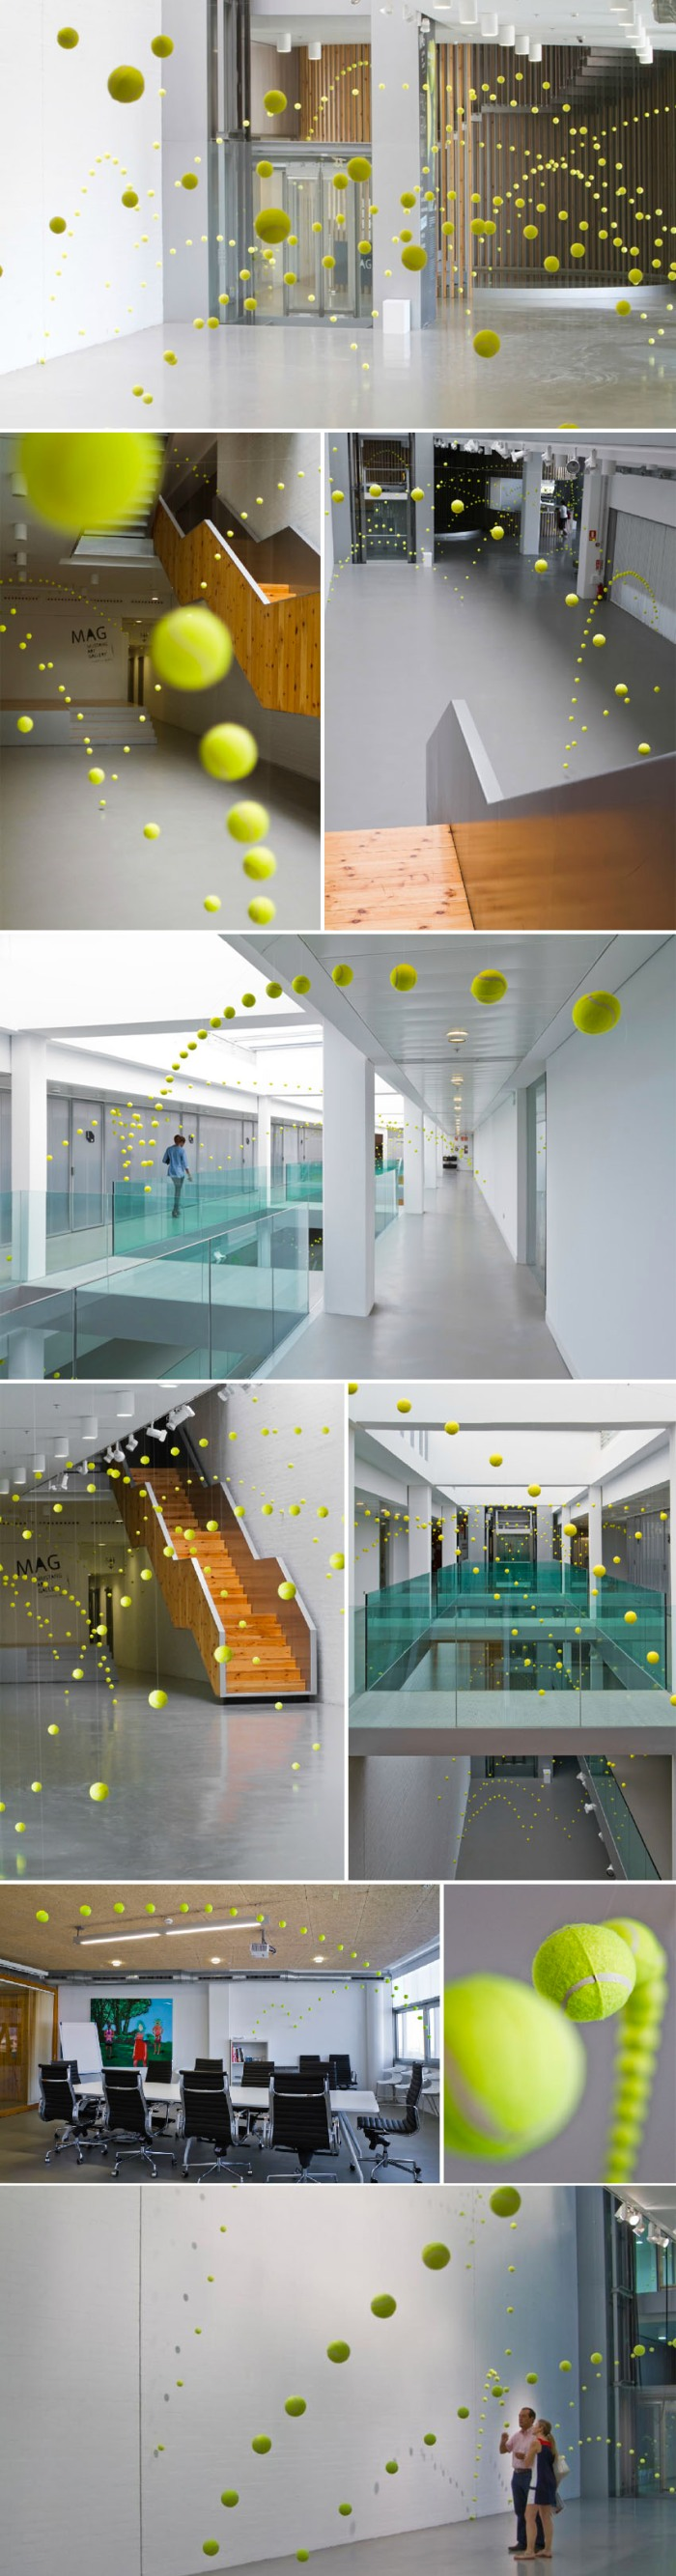 art installation, tennis balls, fun, contemporary art in spain, cool installation, collabcubed